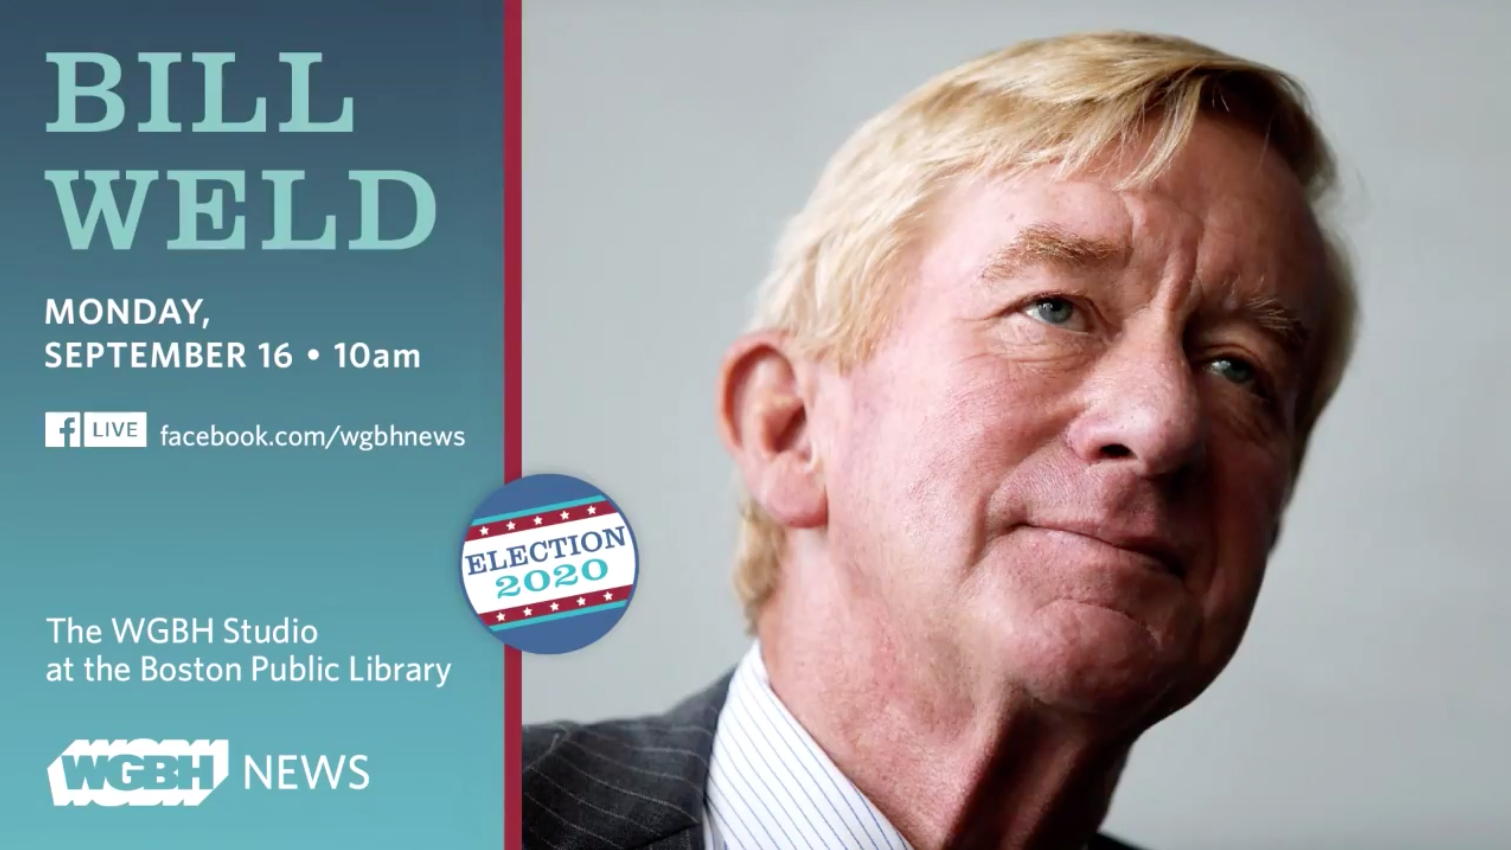 2020 Spotlight: Digital Town Hall With Bill Weld